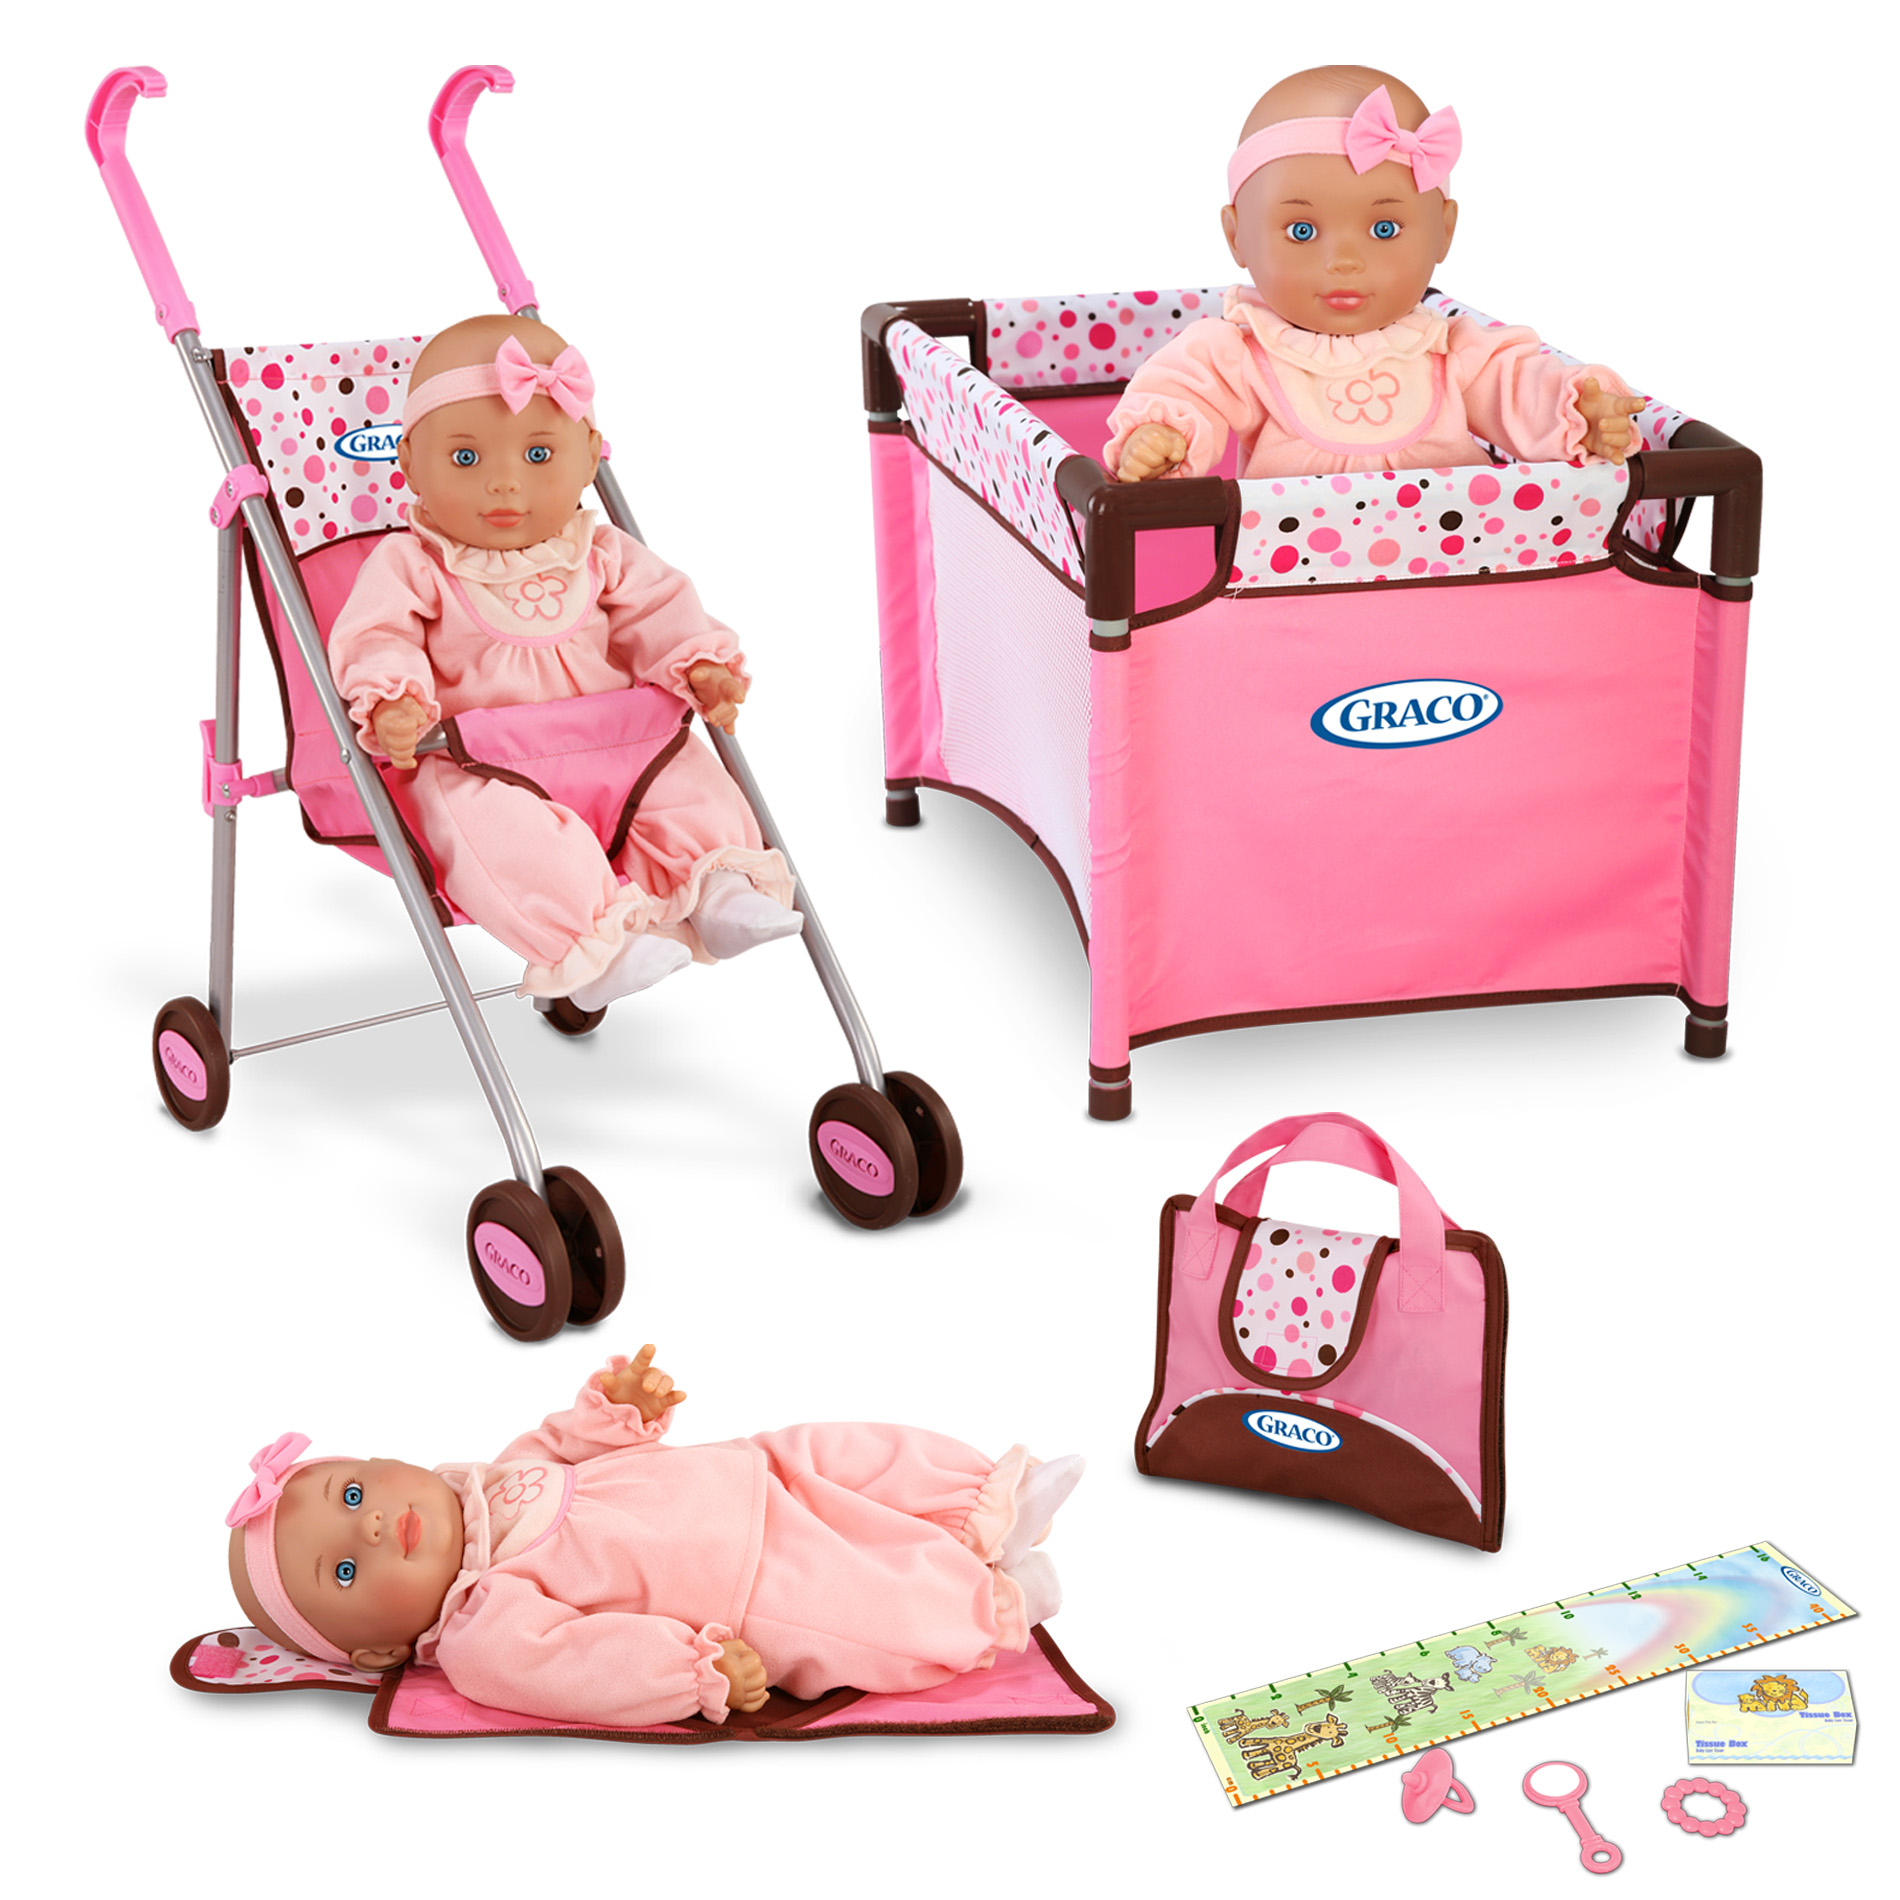 Baby Care Playpen Reviews Graco Doll Playset Taking Care Of The Babies In Style At